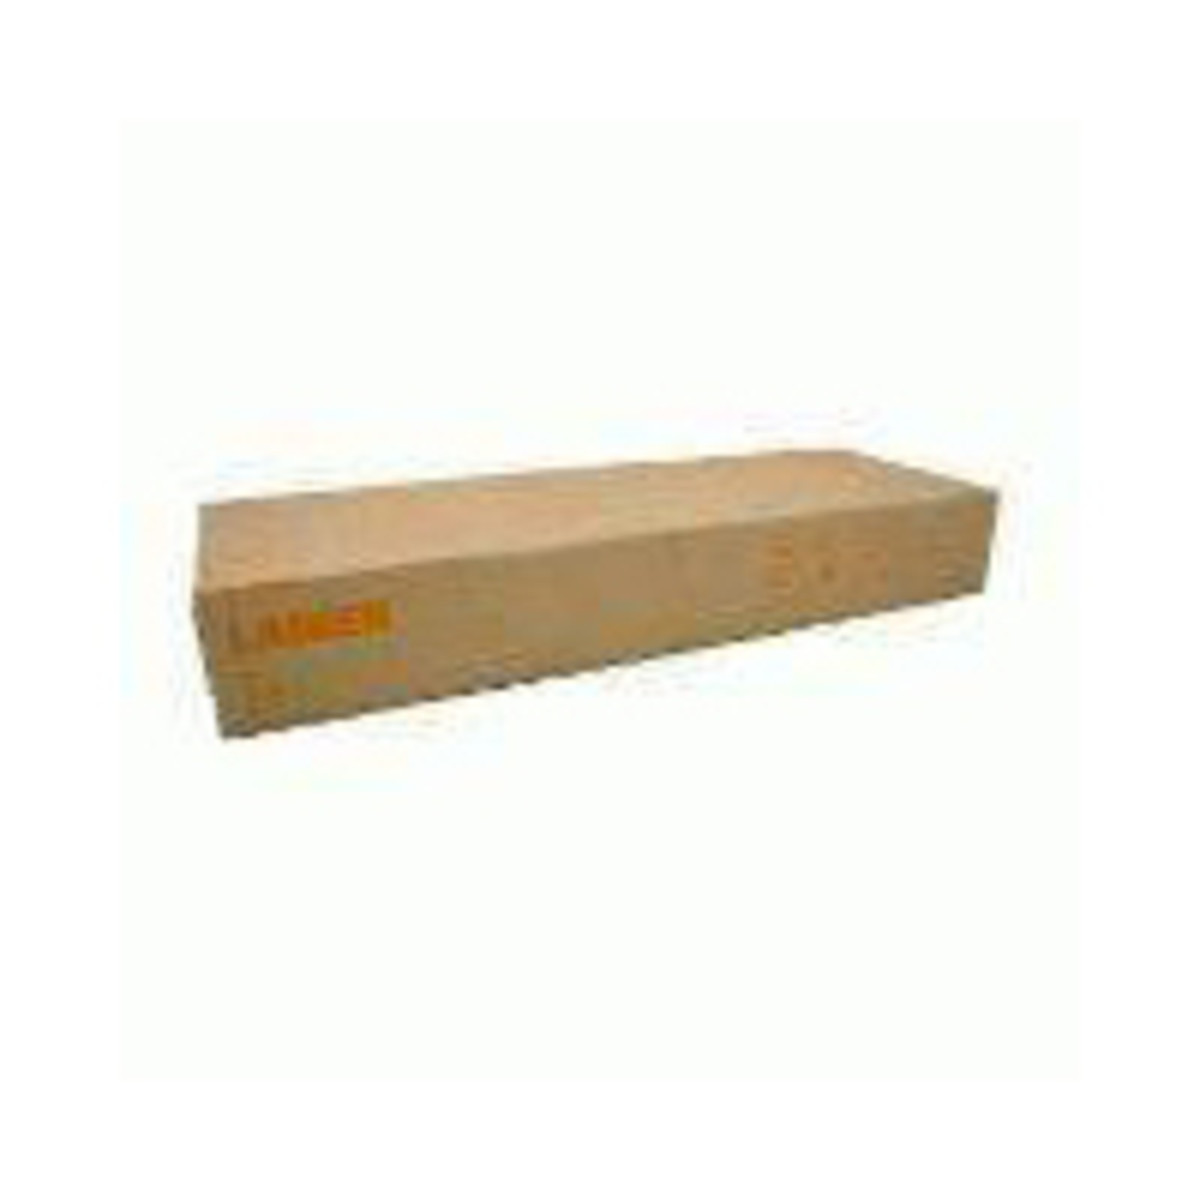 Lanier 888-337 Yellow Toner Cartridge